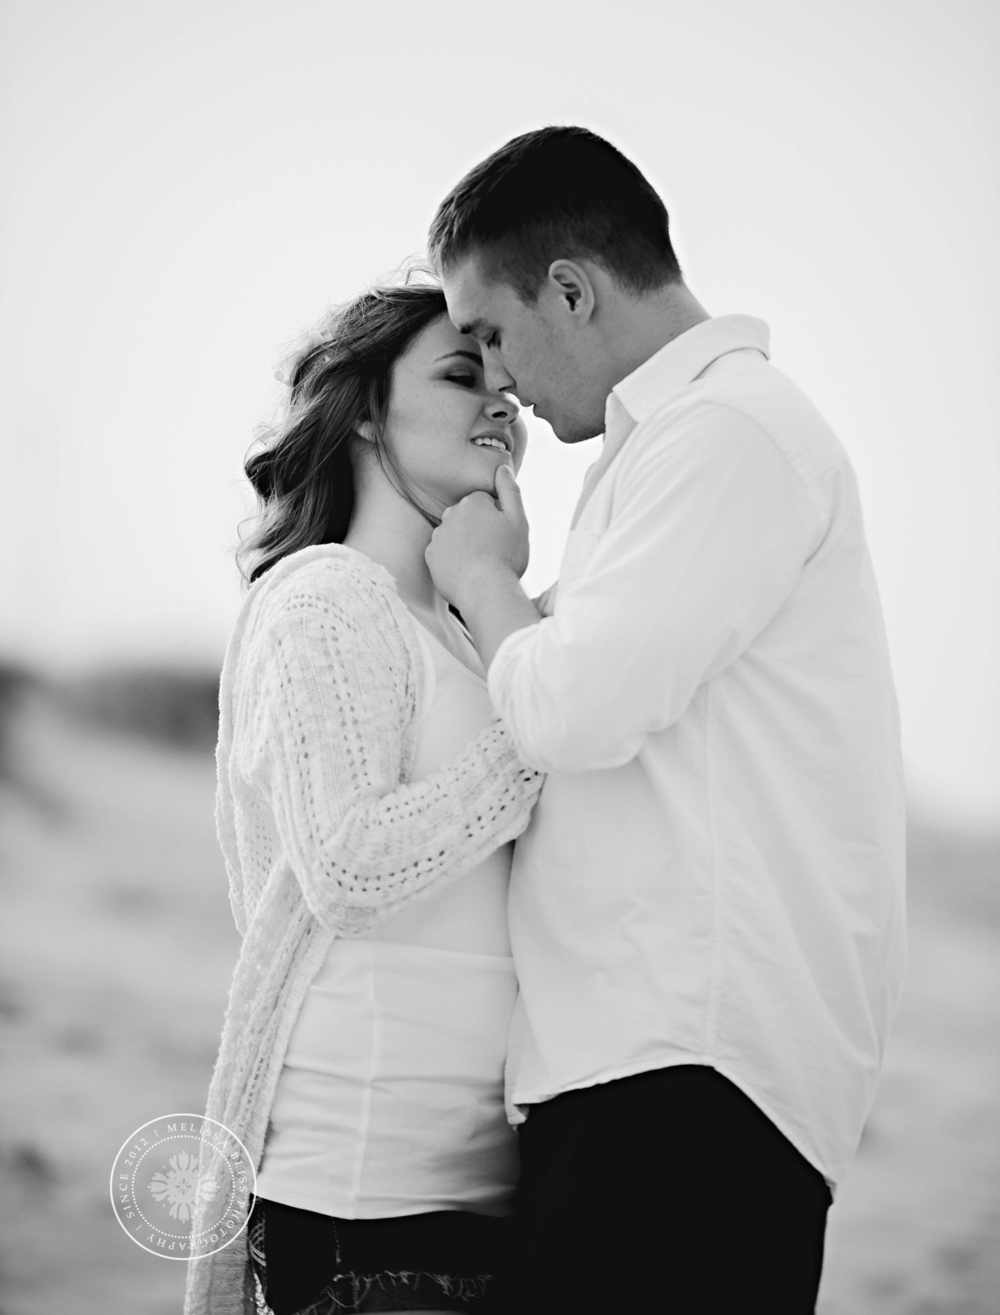 melissa-bliss-photography-norfolk-virginia-beach-wedding-photographer-beach-engagement-session-couples-portraits.png